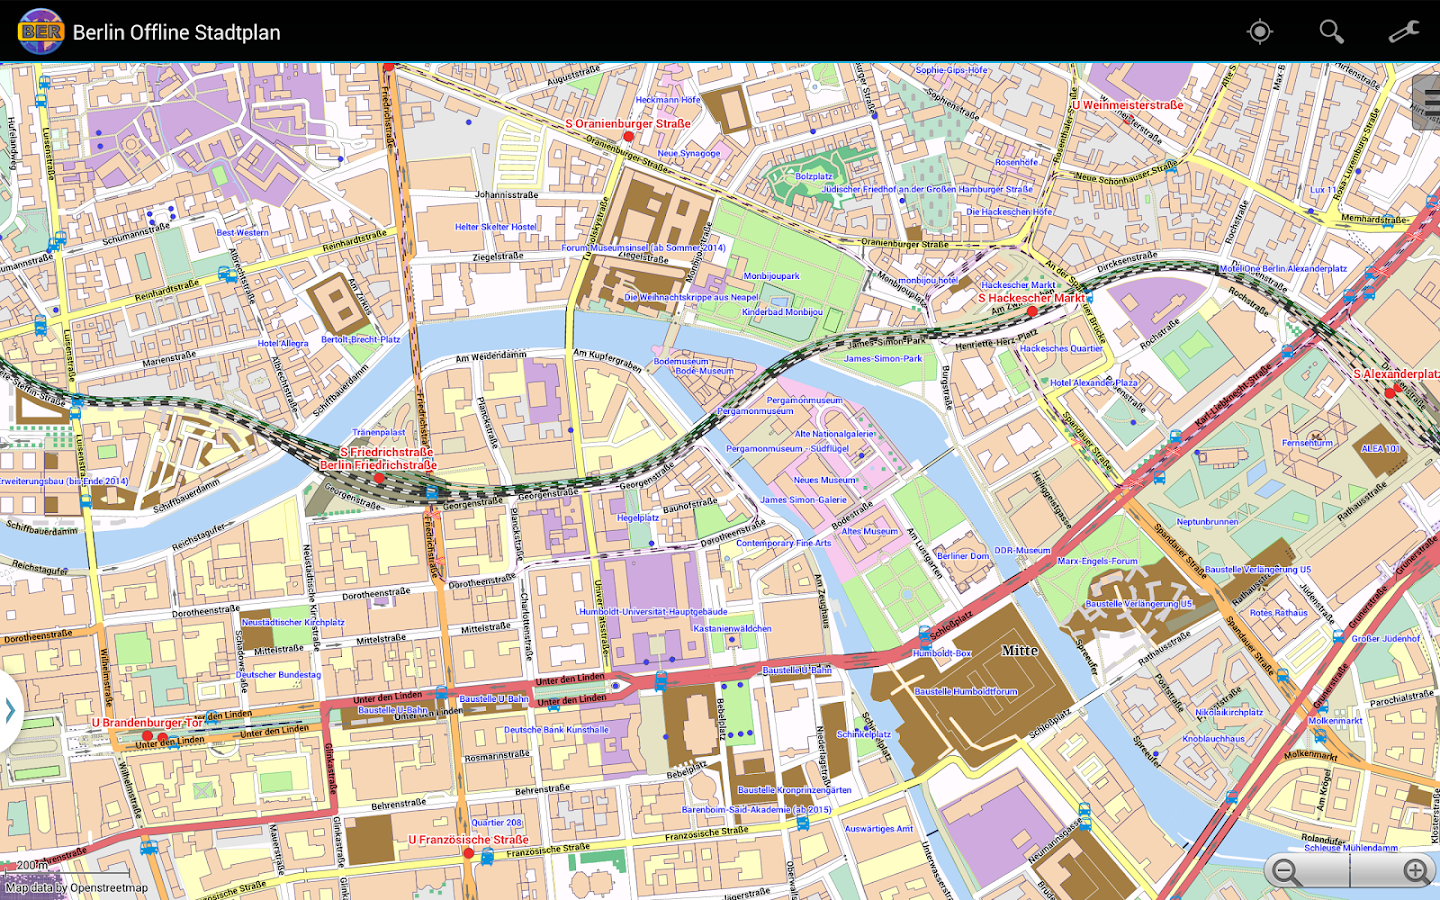 Berlin Offline City Map Android Apps on Google Play – Berlin City Map Tourist